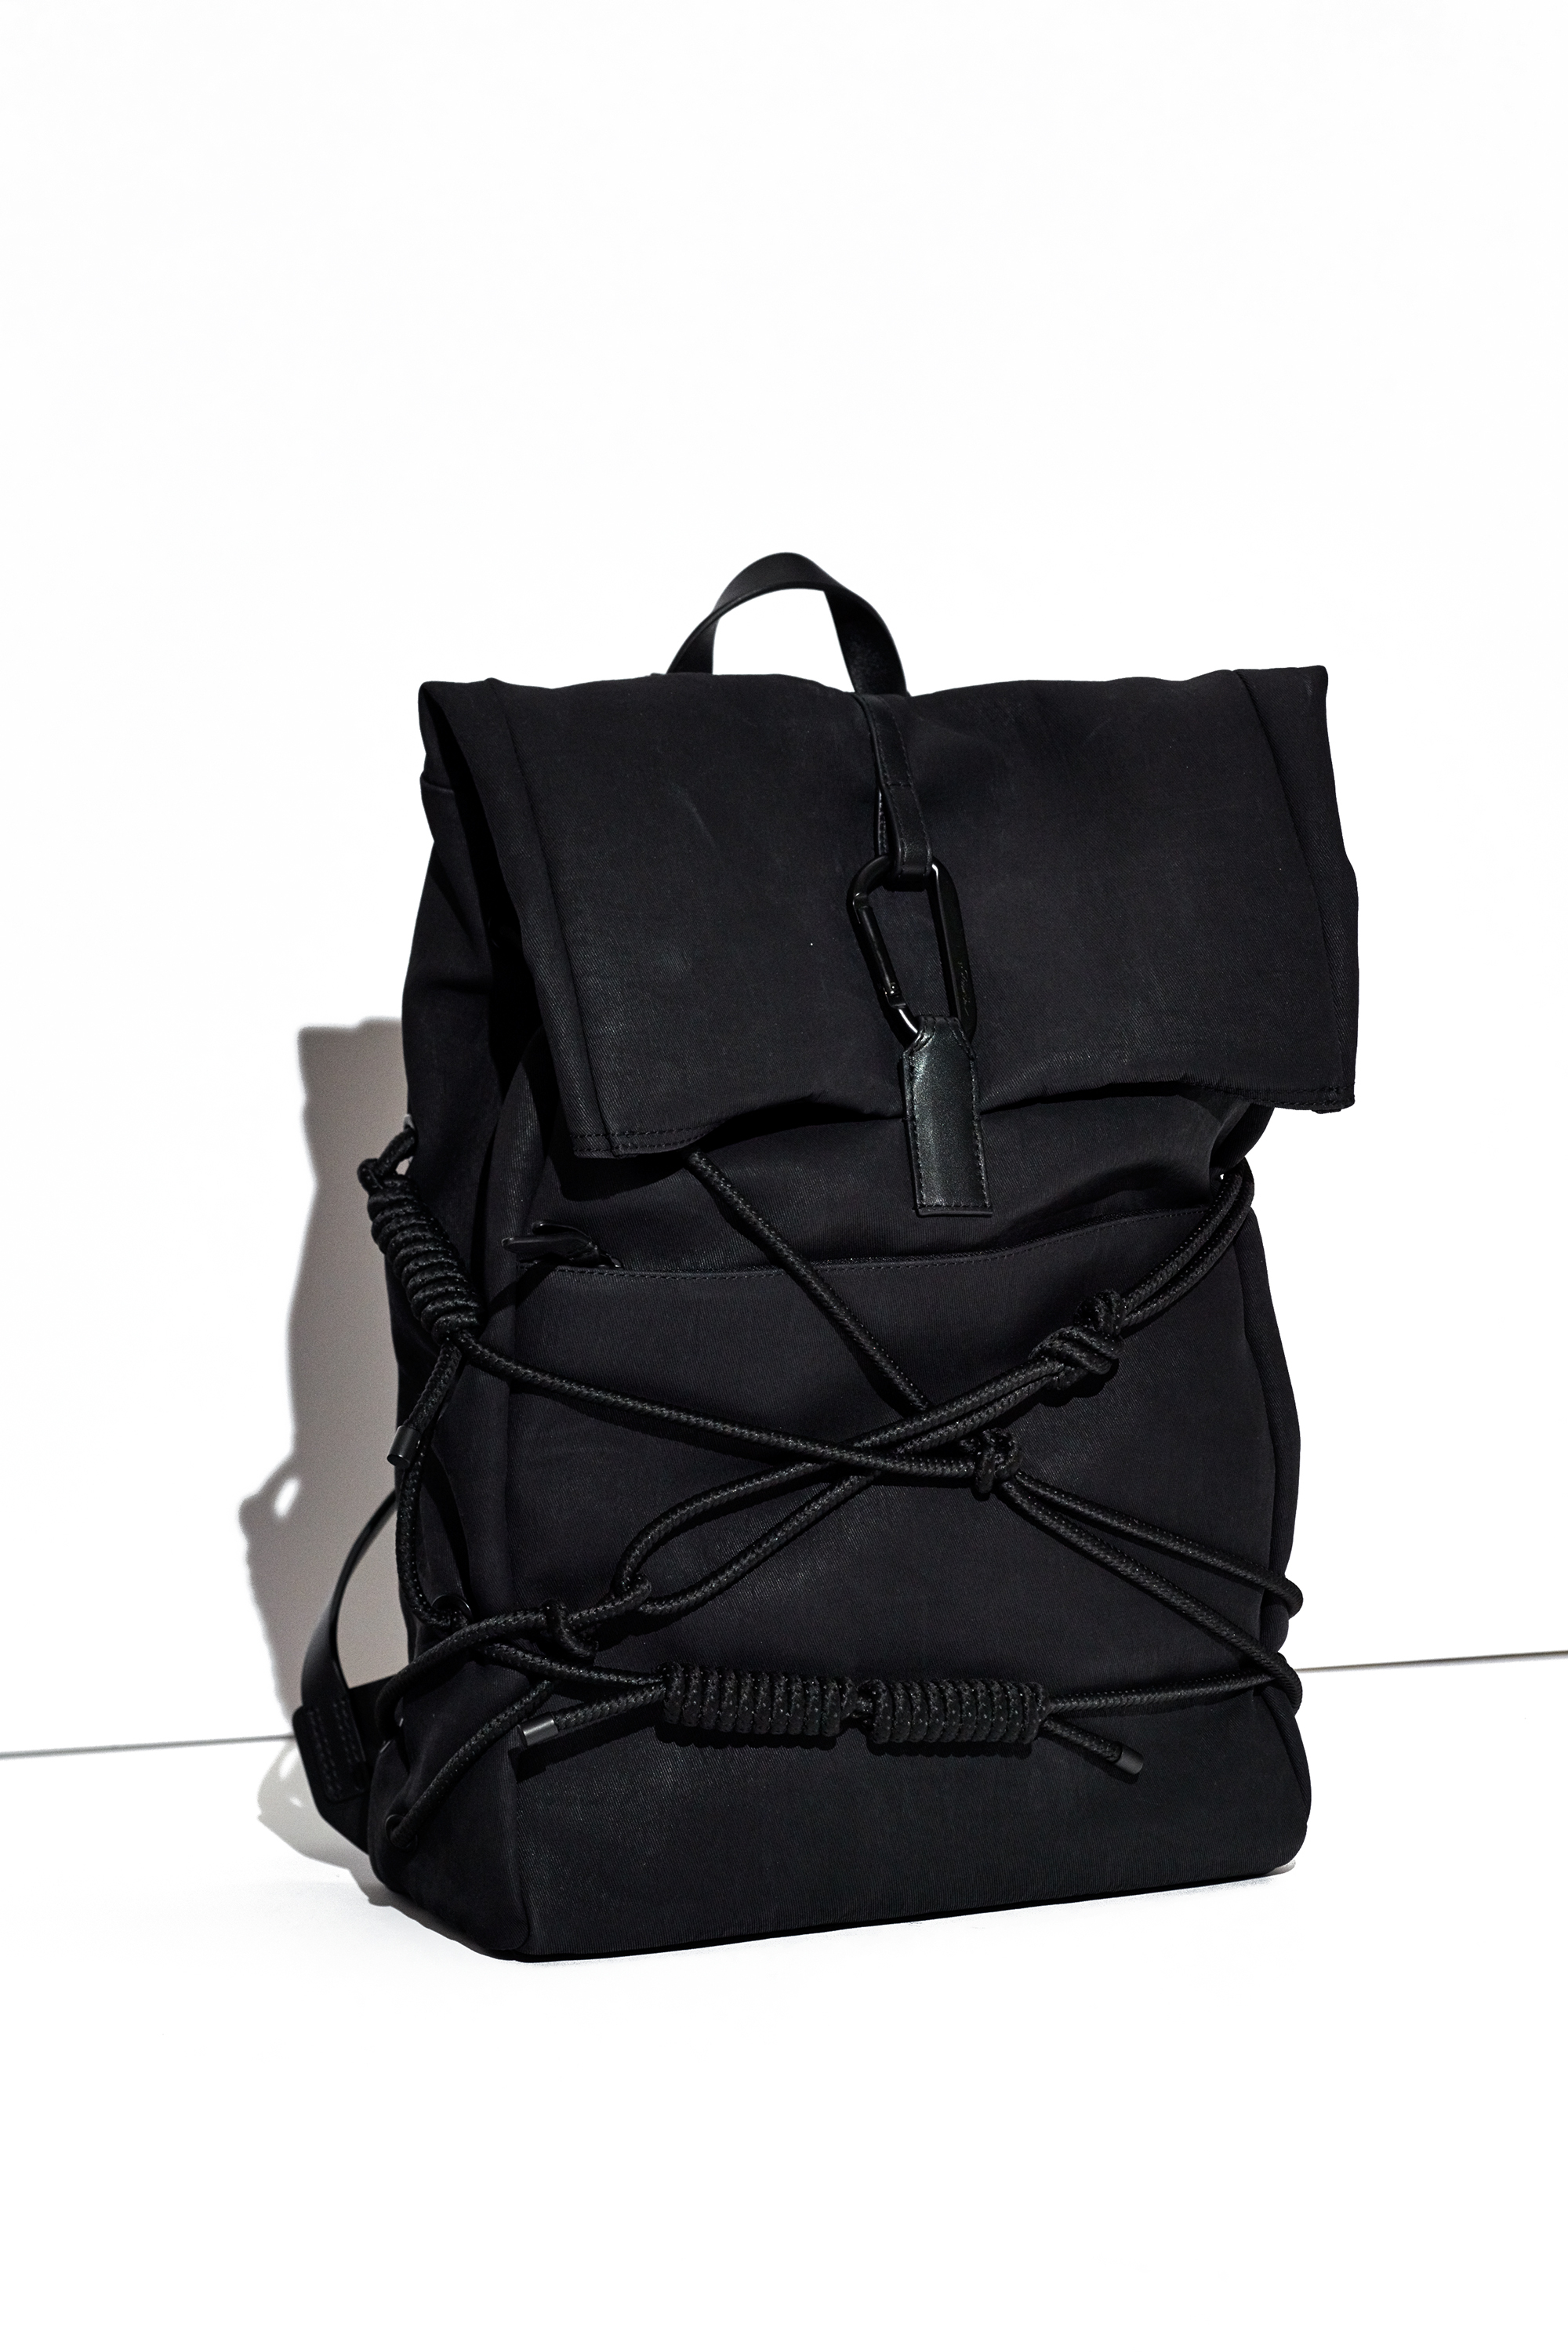 3.1 phillip lim Alpine Roll Top Backpack in Black for Men | Lyst